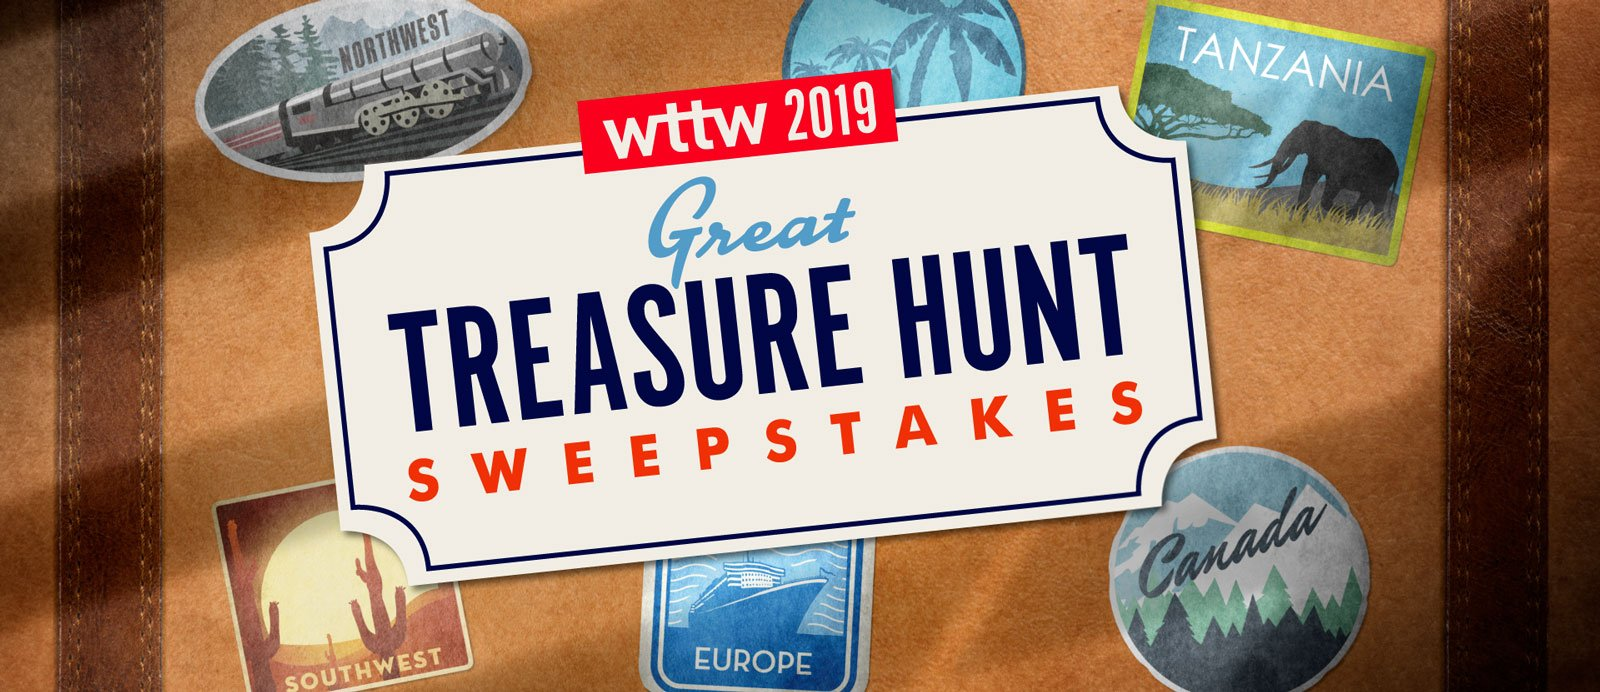 2019 WTTW Great Treasure Hunt Sweepstakes